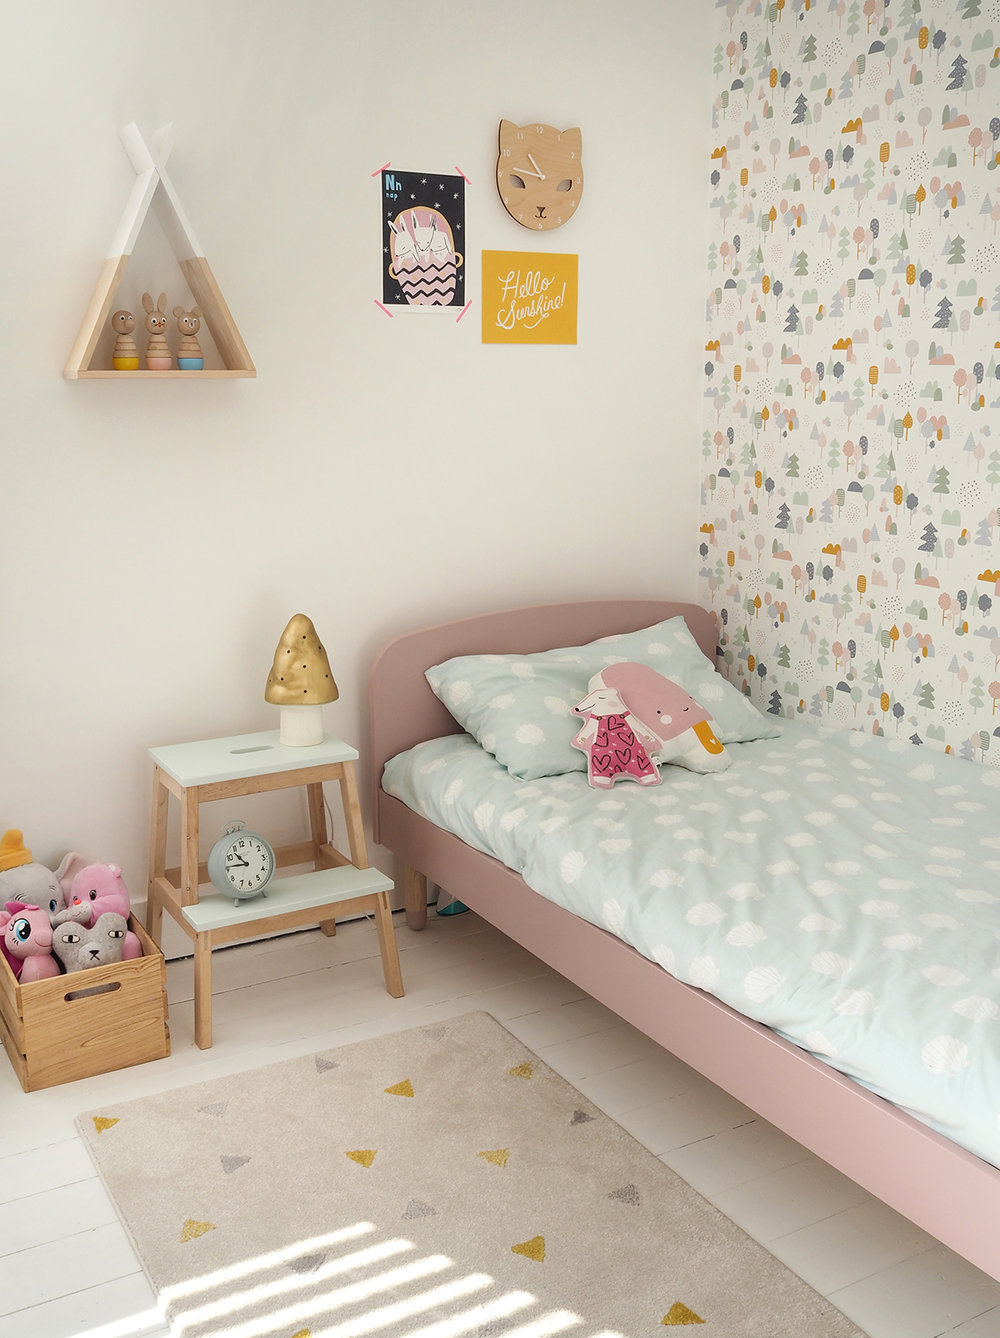 My daughter's bedroom makeover